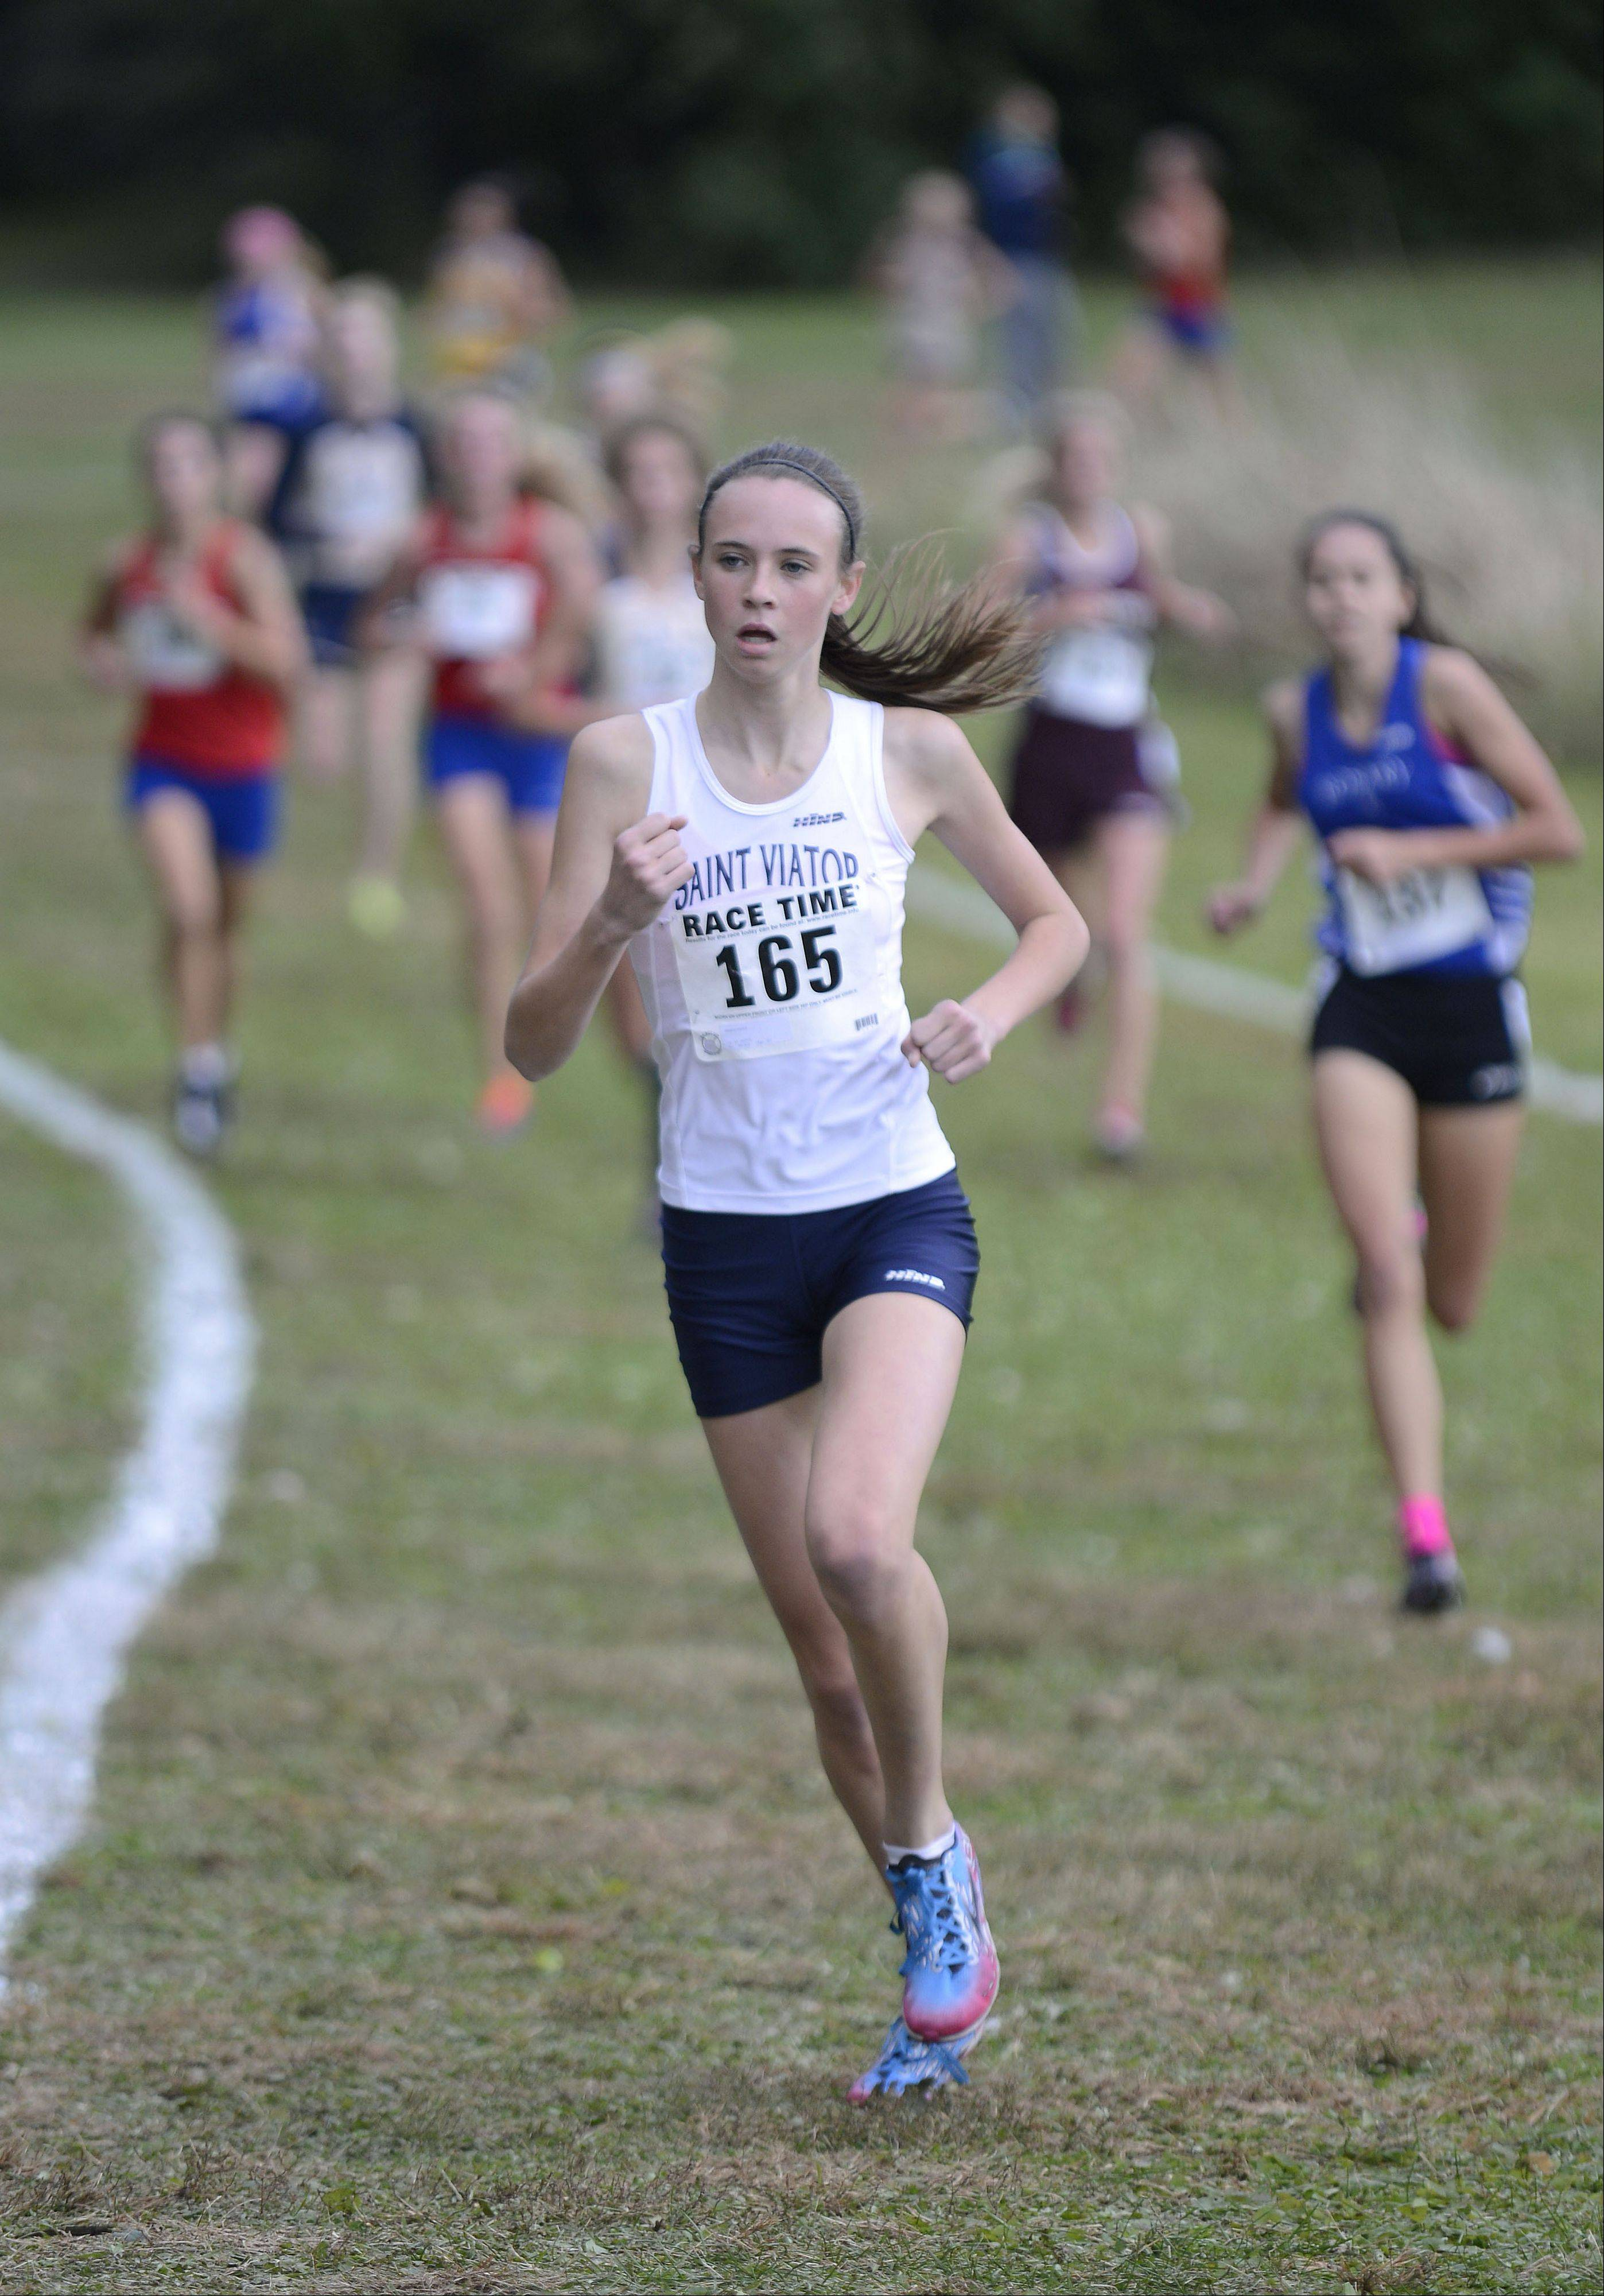 St. Viator's Meghan Carroll took eighth place in the Class 2A cross country regional on Saturday, October 26.